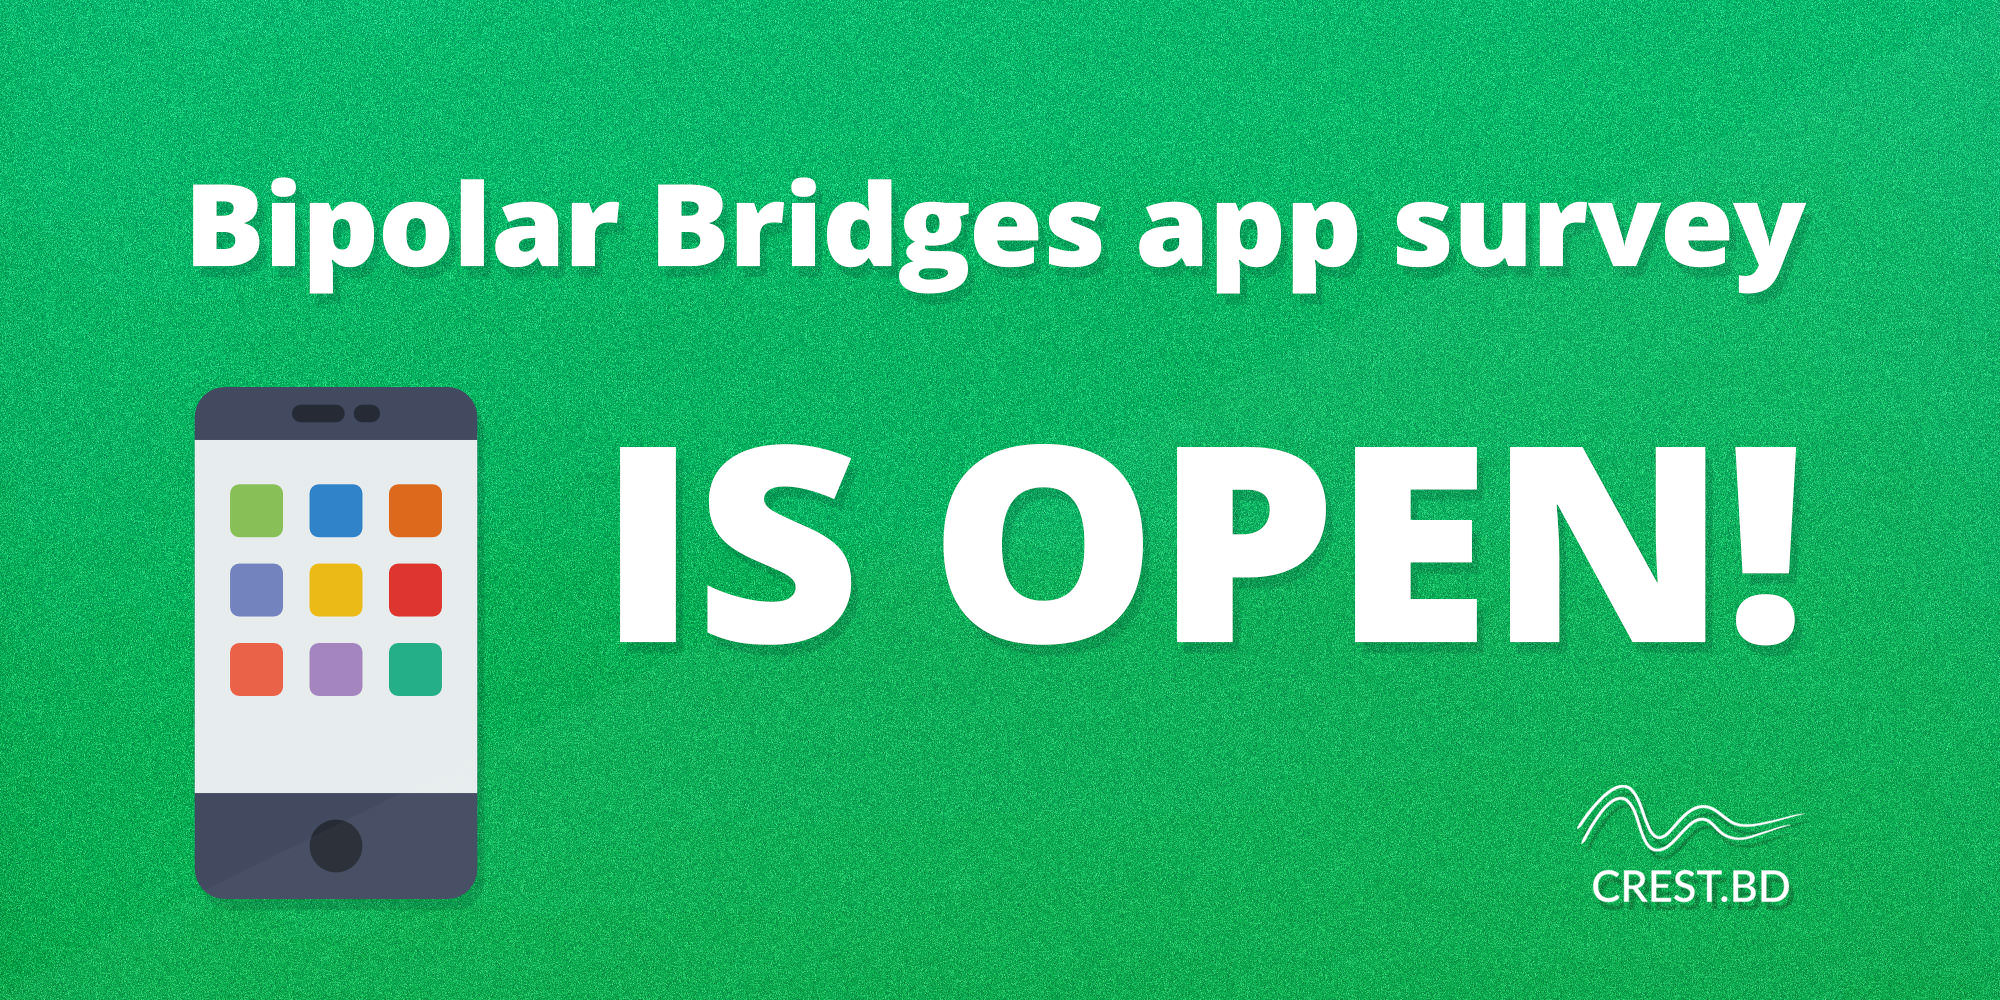 Bipolar Bridges app survey is open!